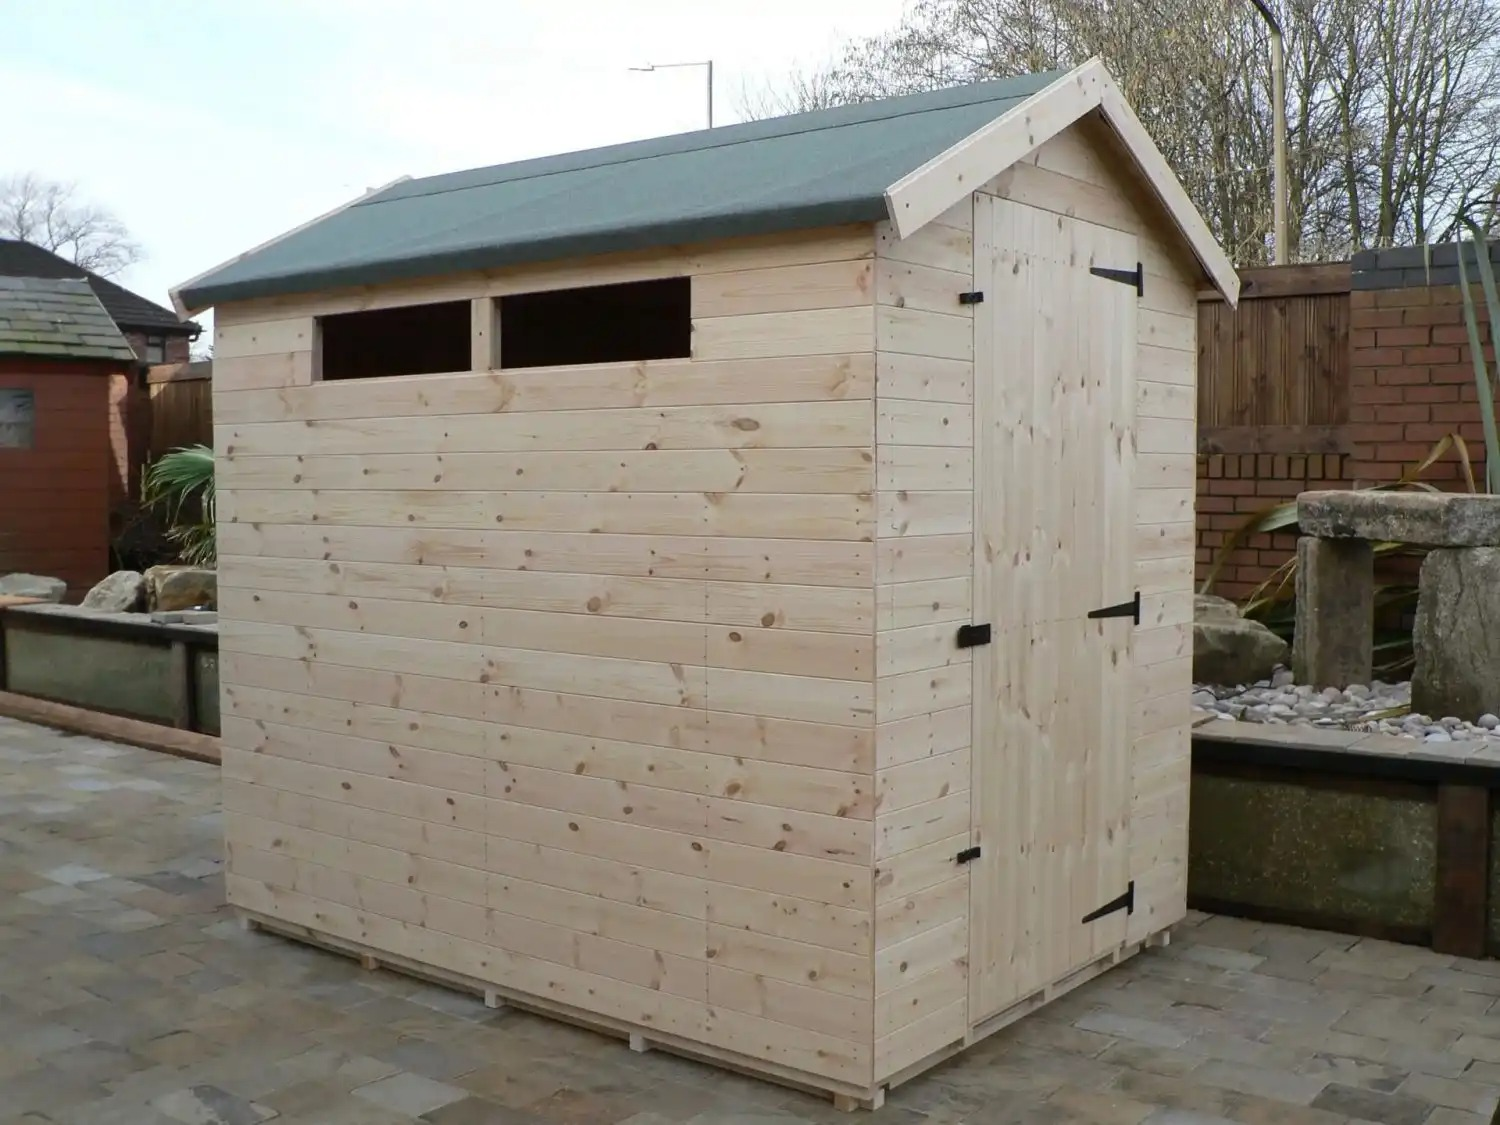 7' X 5' Apex Shed Security Windows